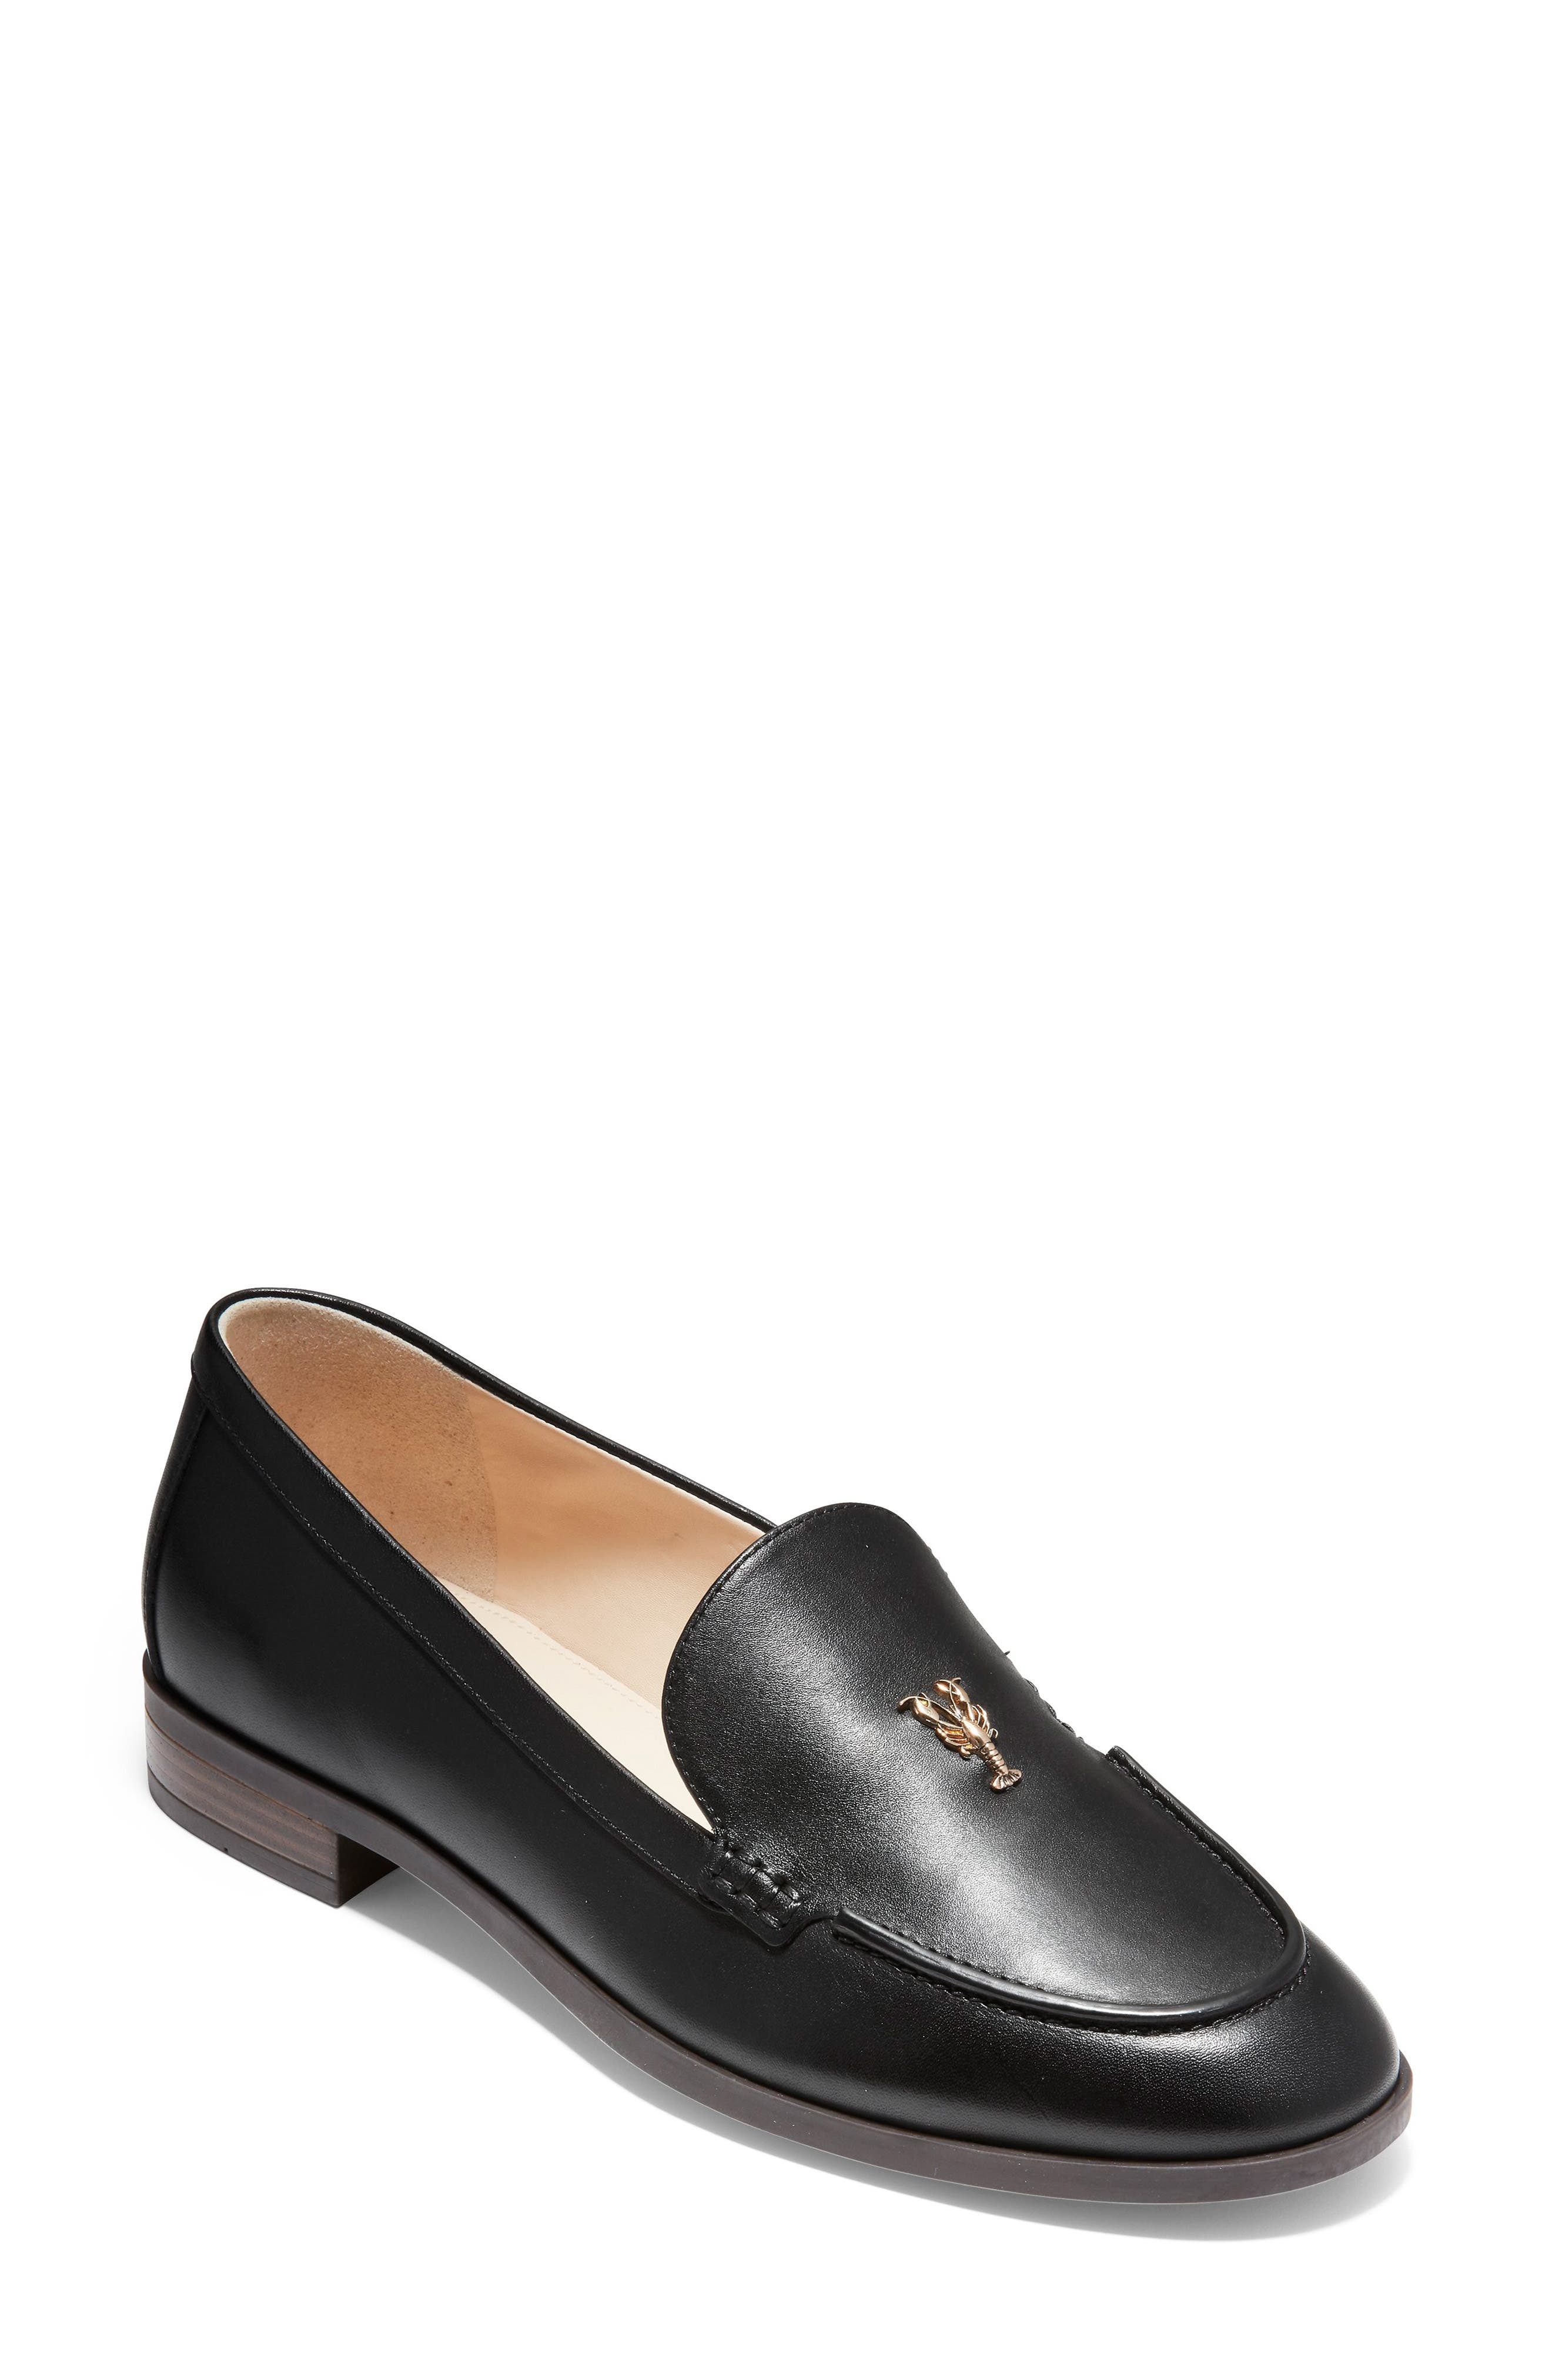 Pinch Lobster Loafer,                         Main,                         color,